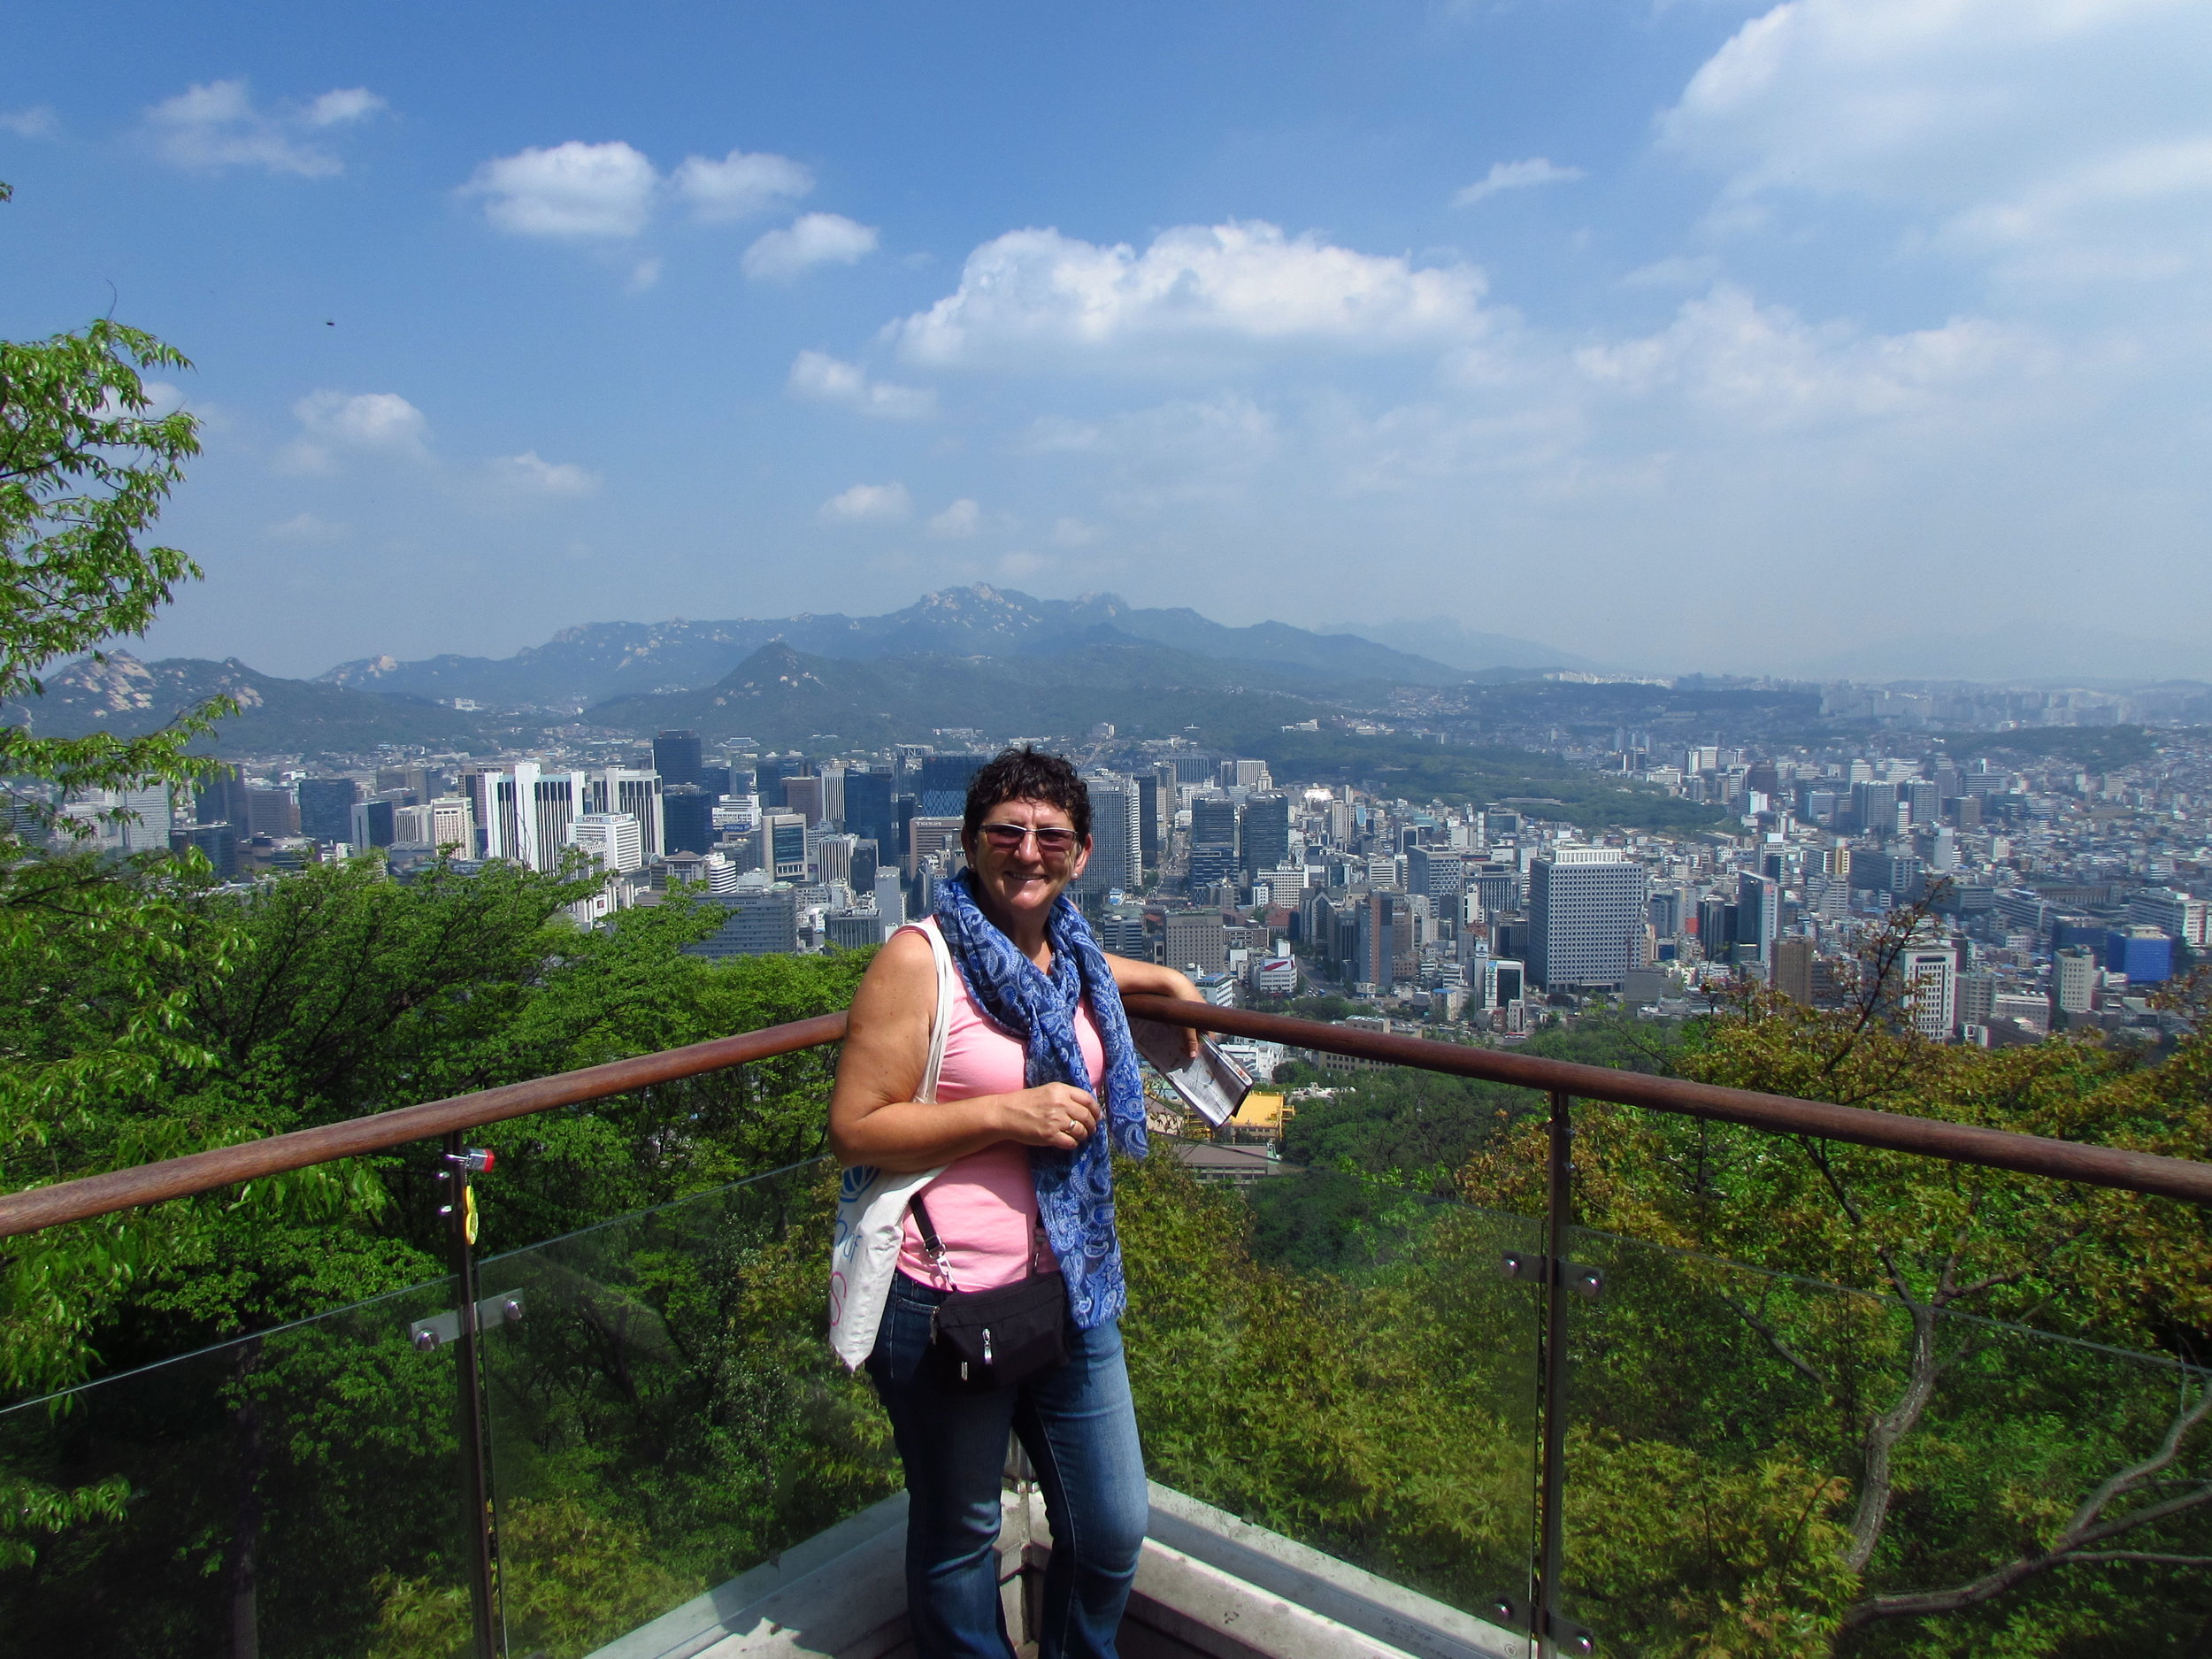 View from the Seoul Tower hill